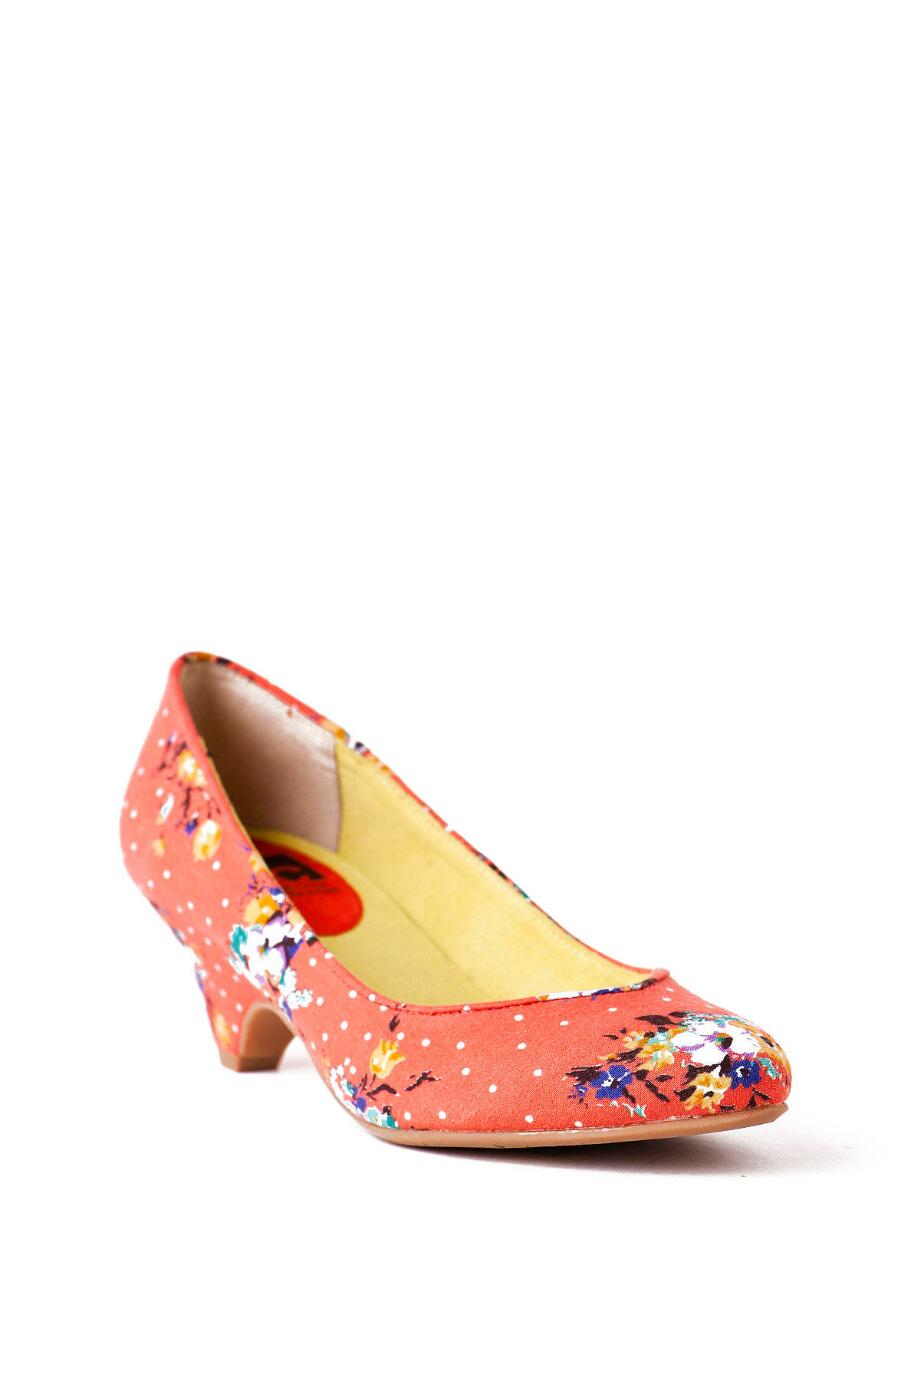 BC Footwear Shoes, In the Winners Circle Floral Heel